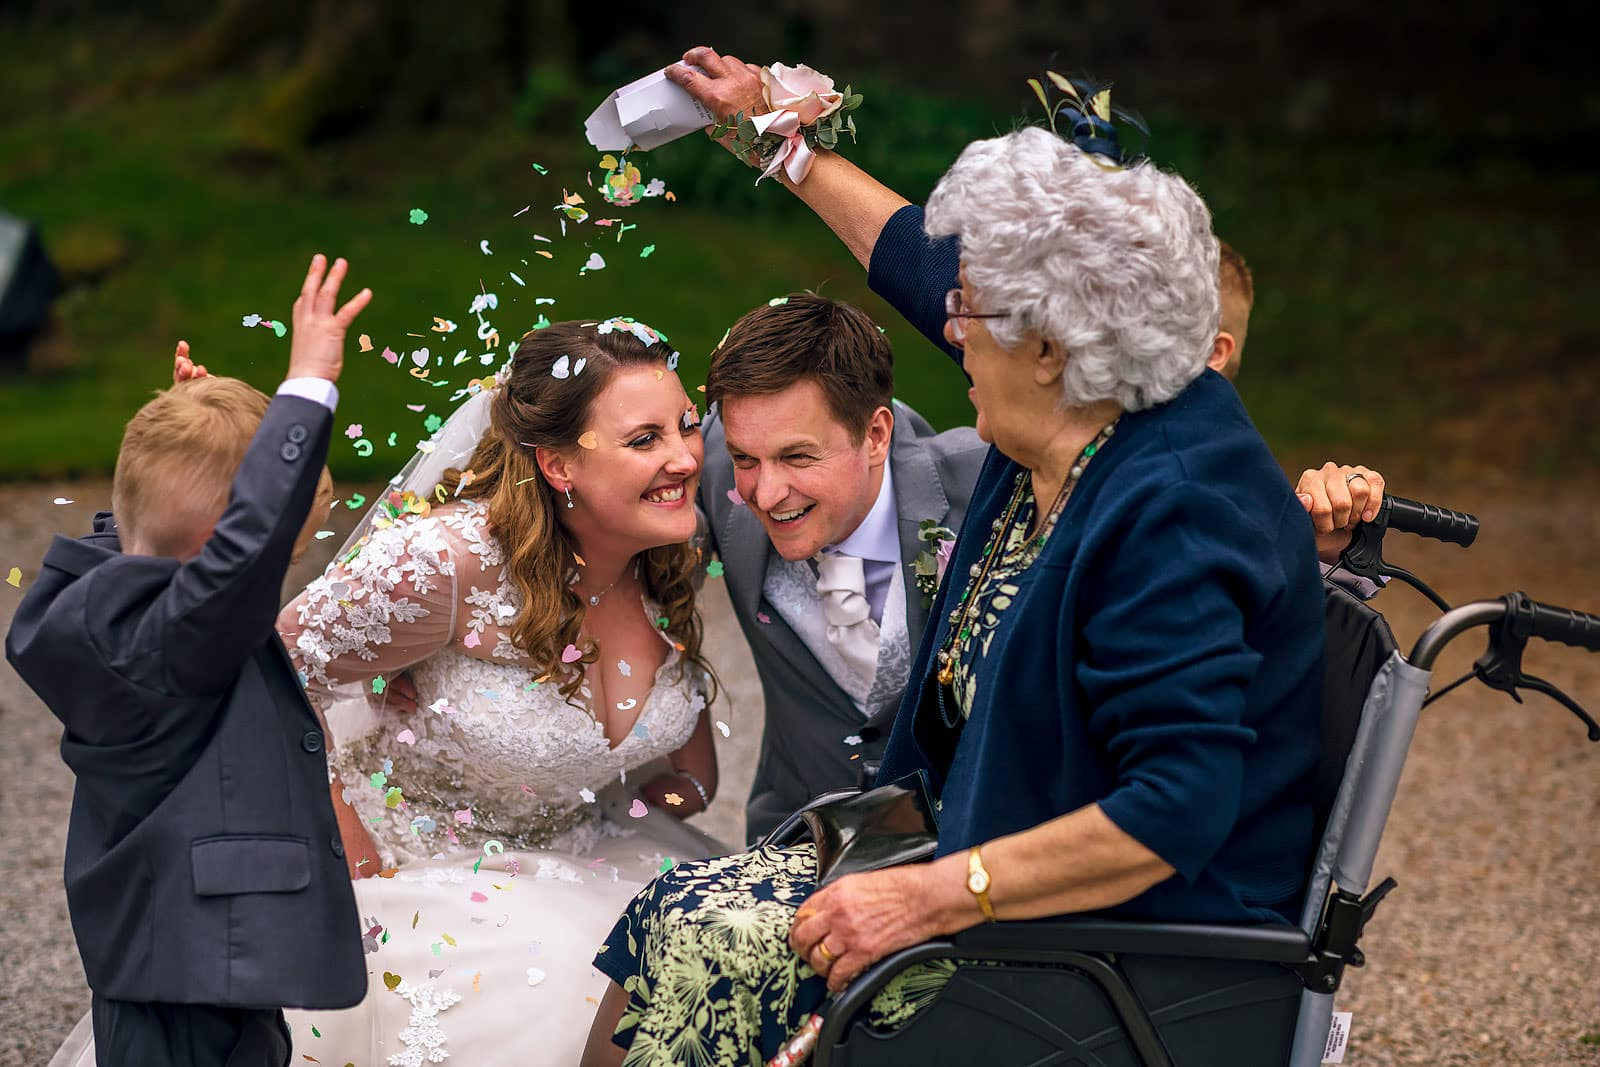 Grandmother throwing confetti